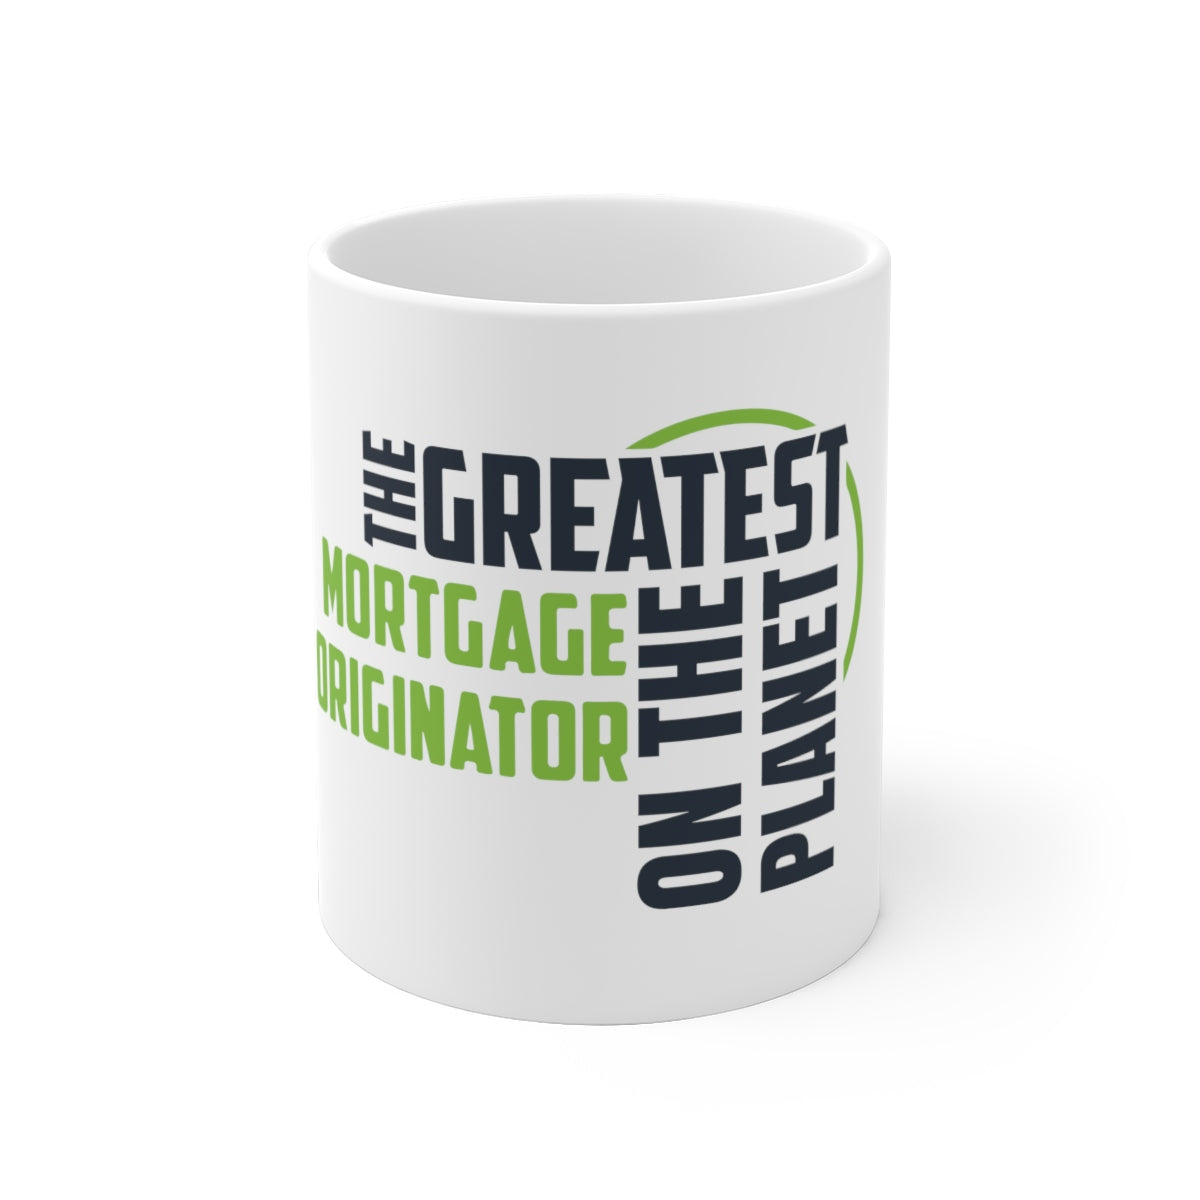 Coffee Mug - Mortgage Originator